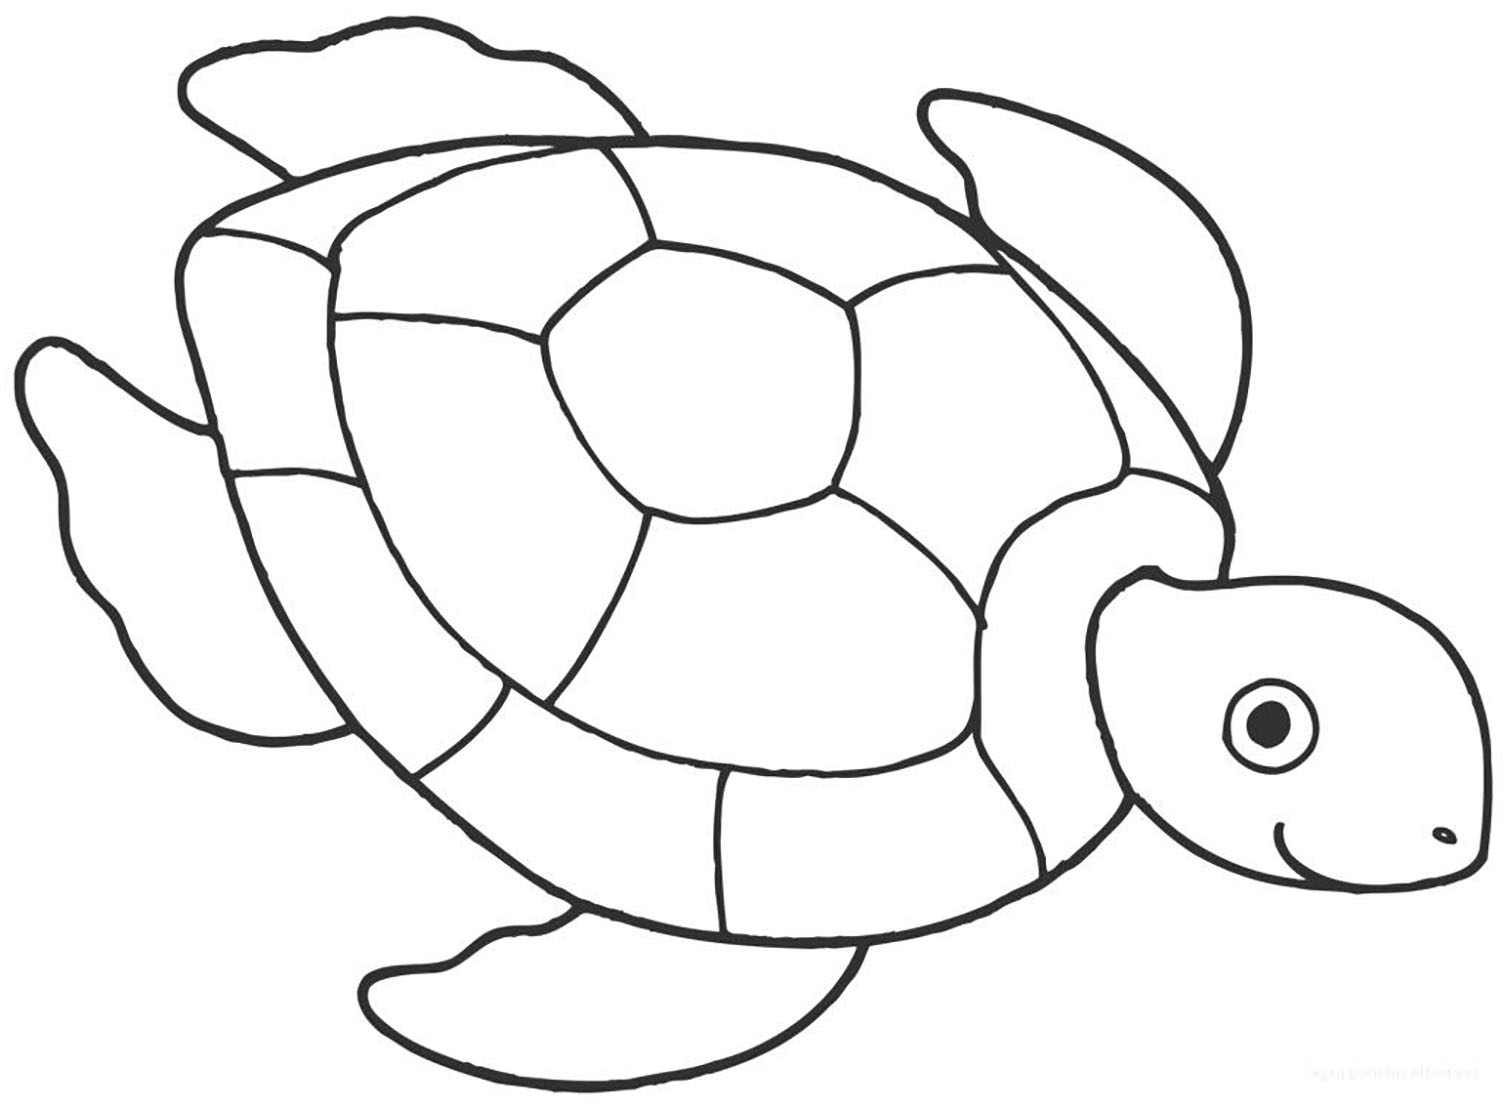 Funny Turtles coloring page